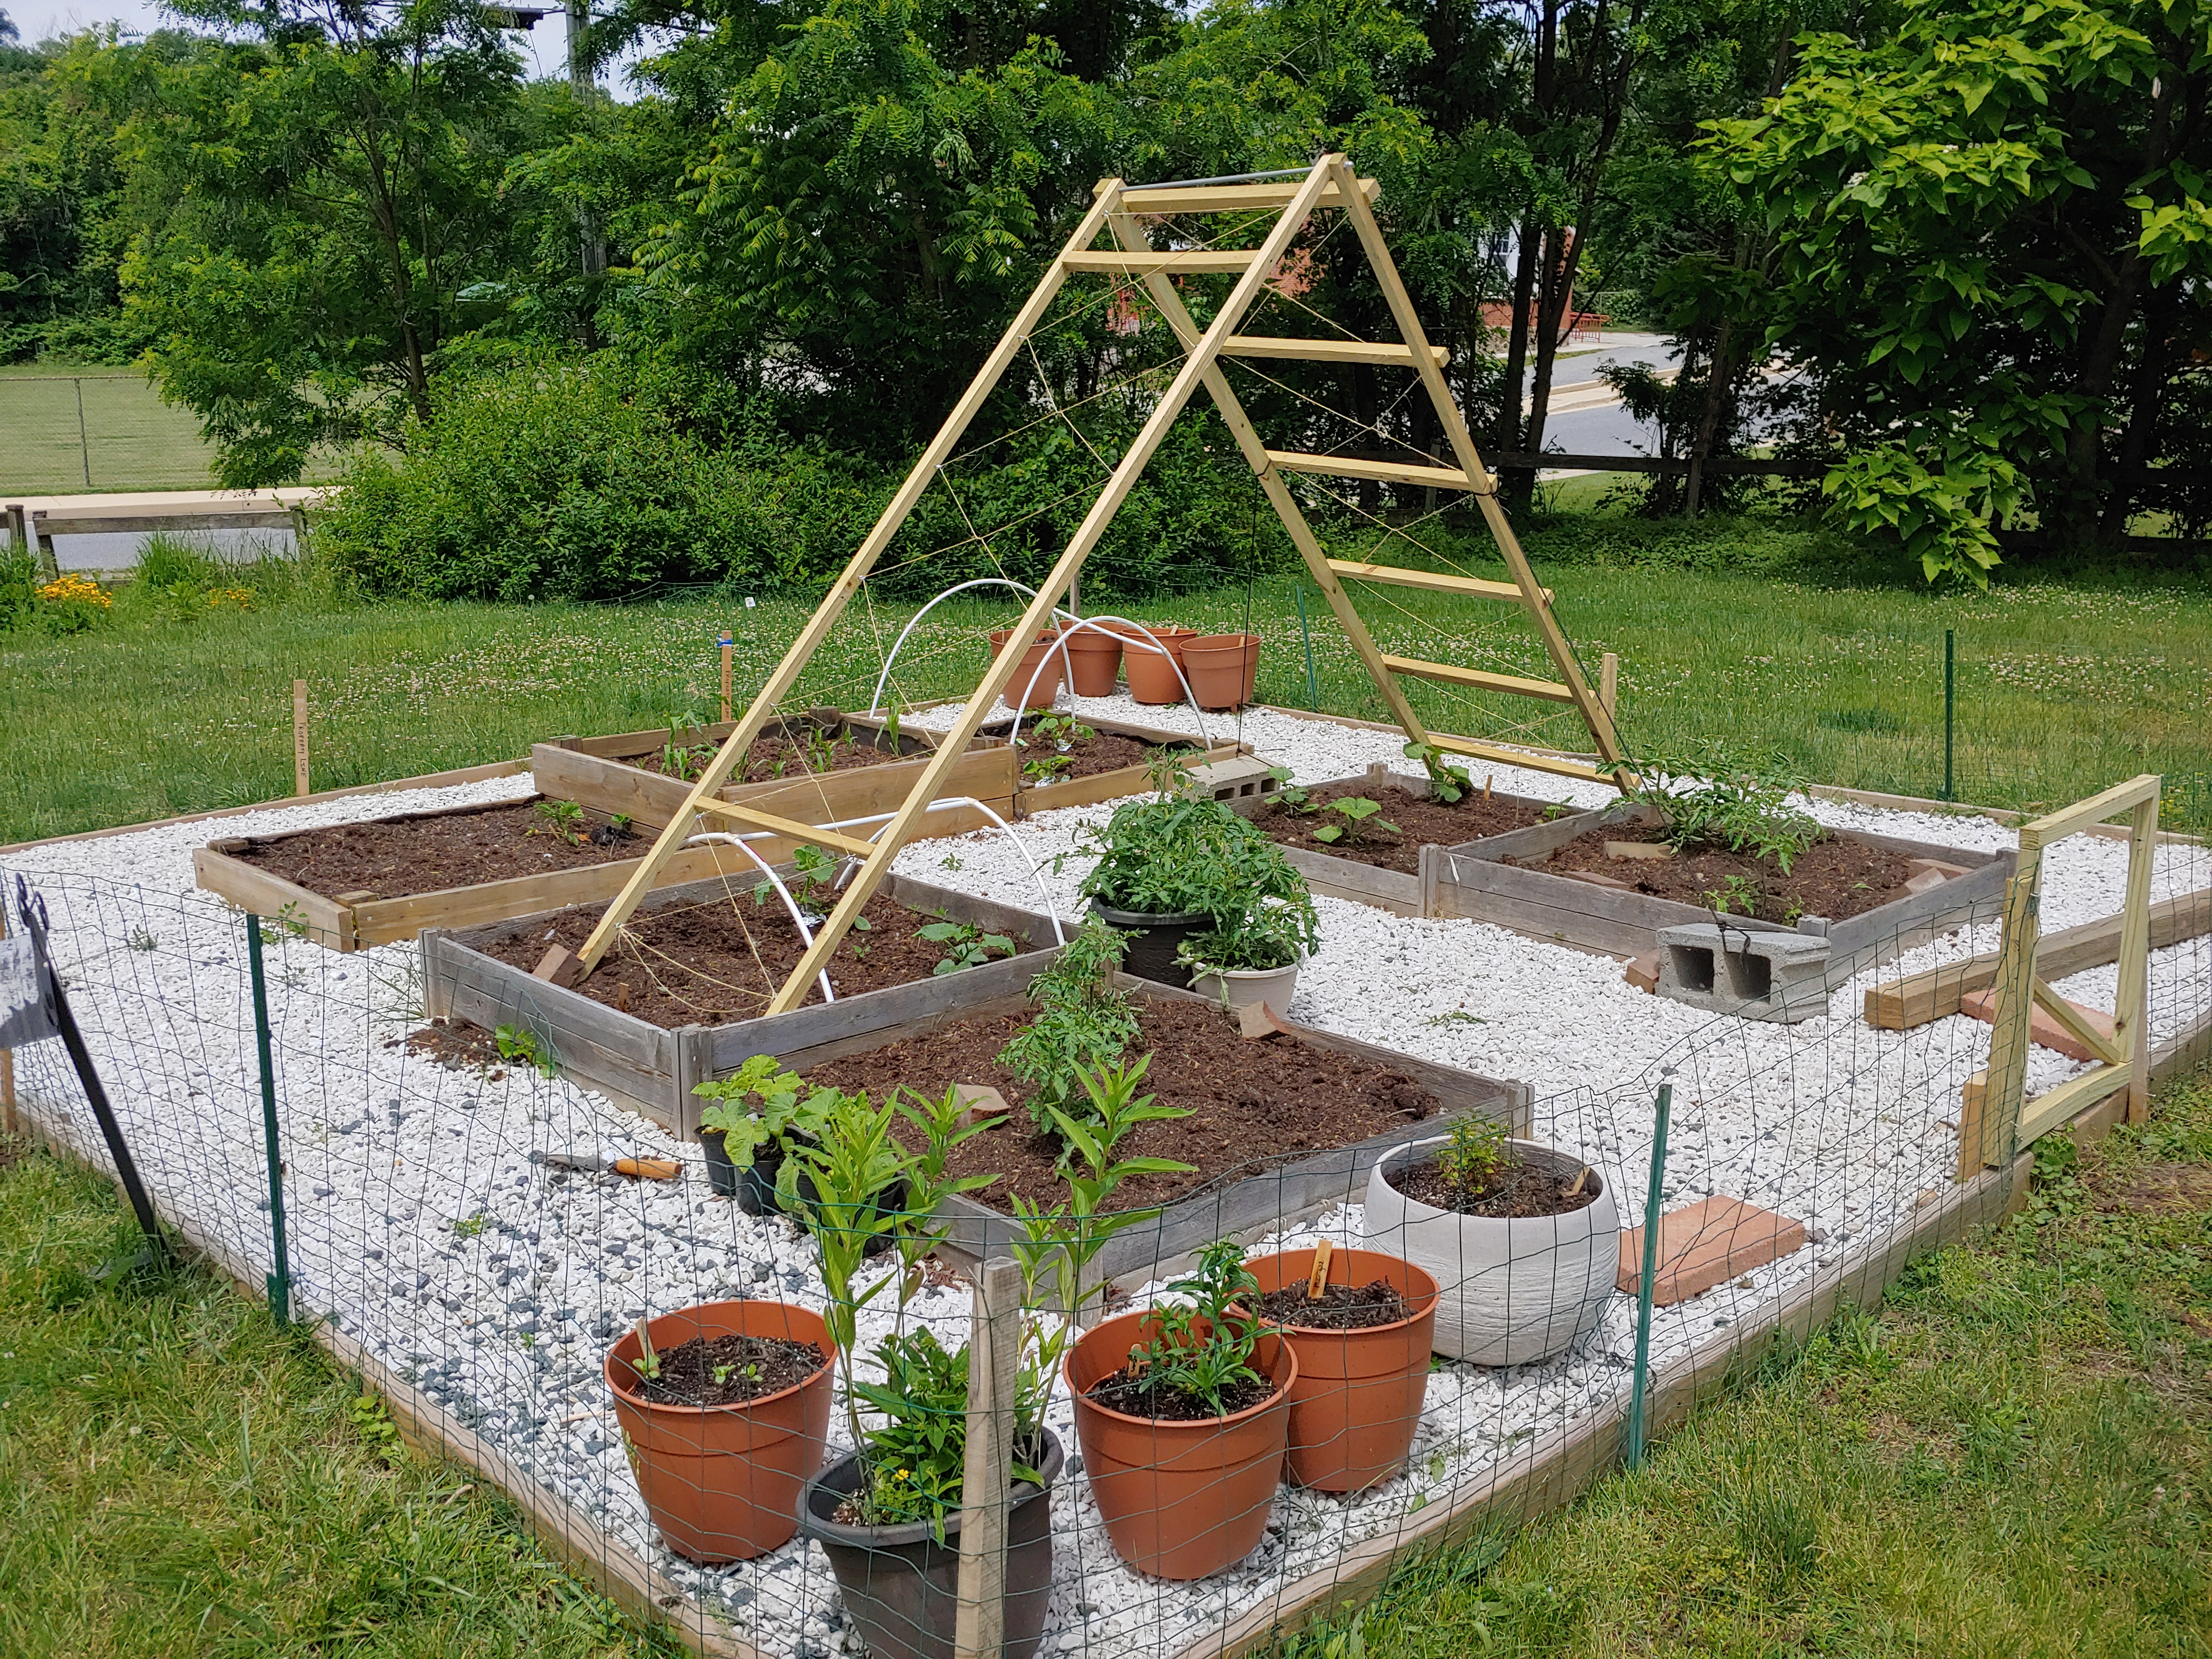 Trellis in the garden with young plants